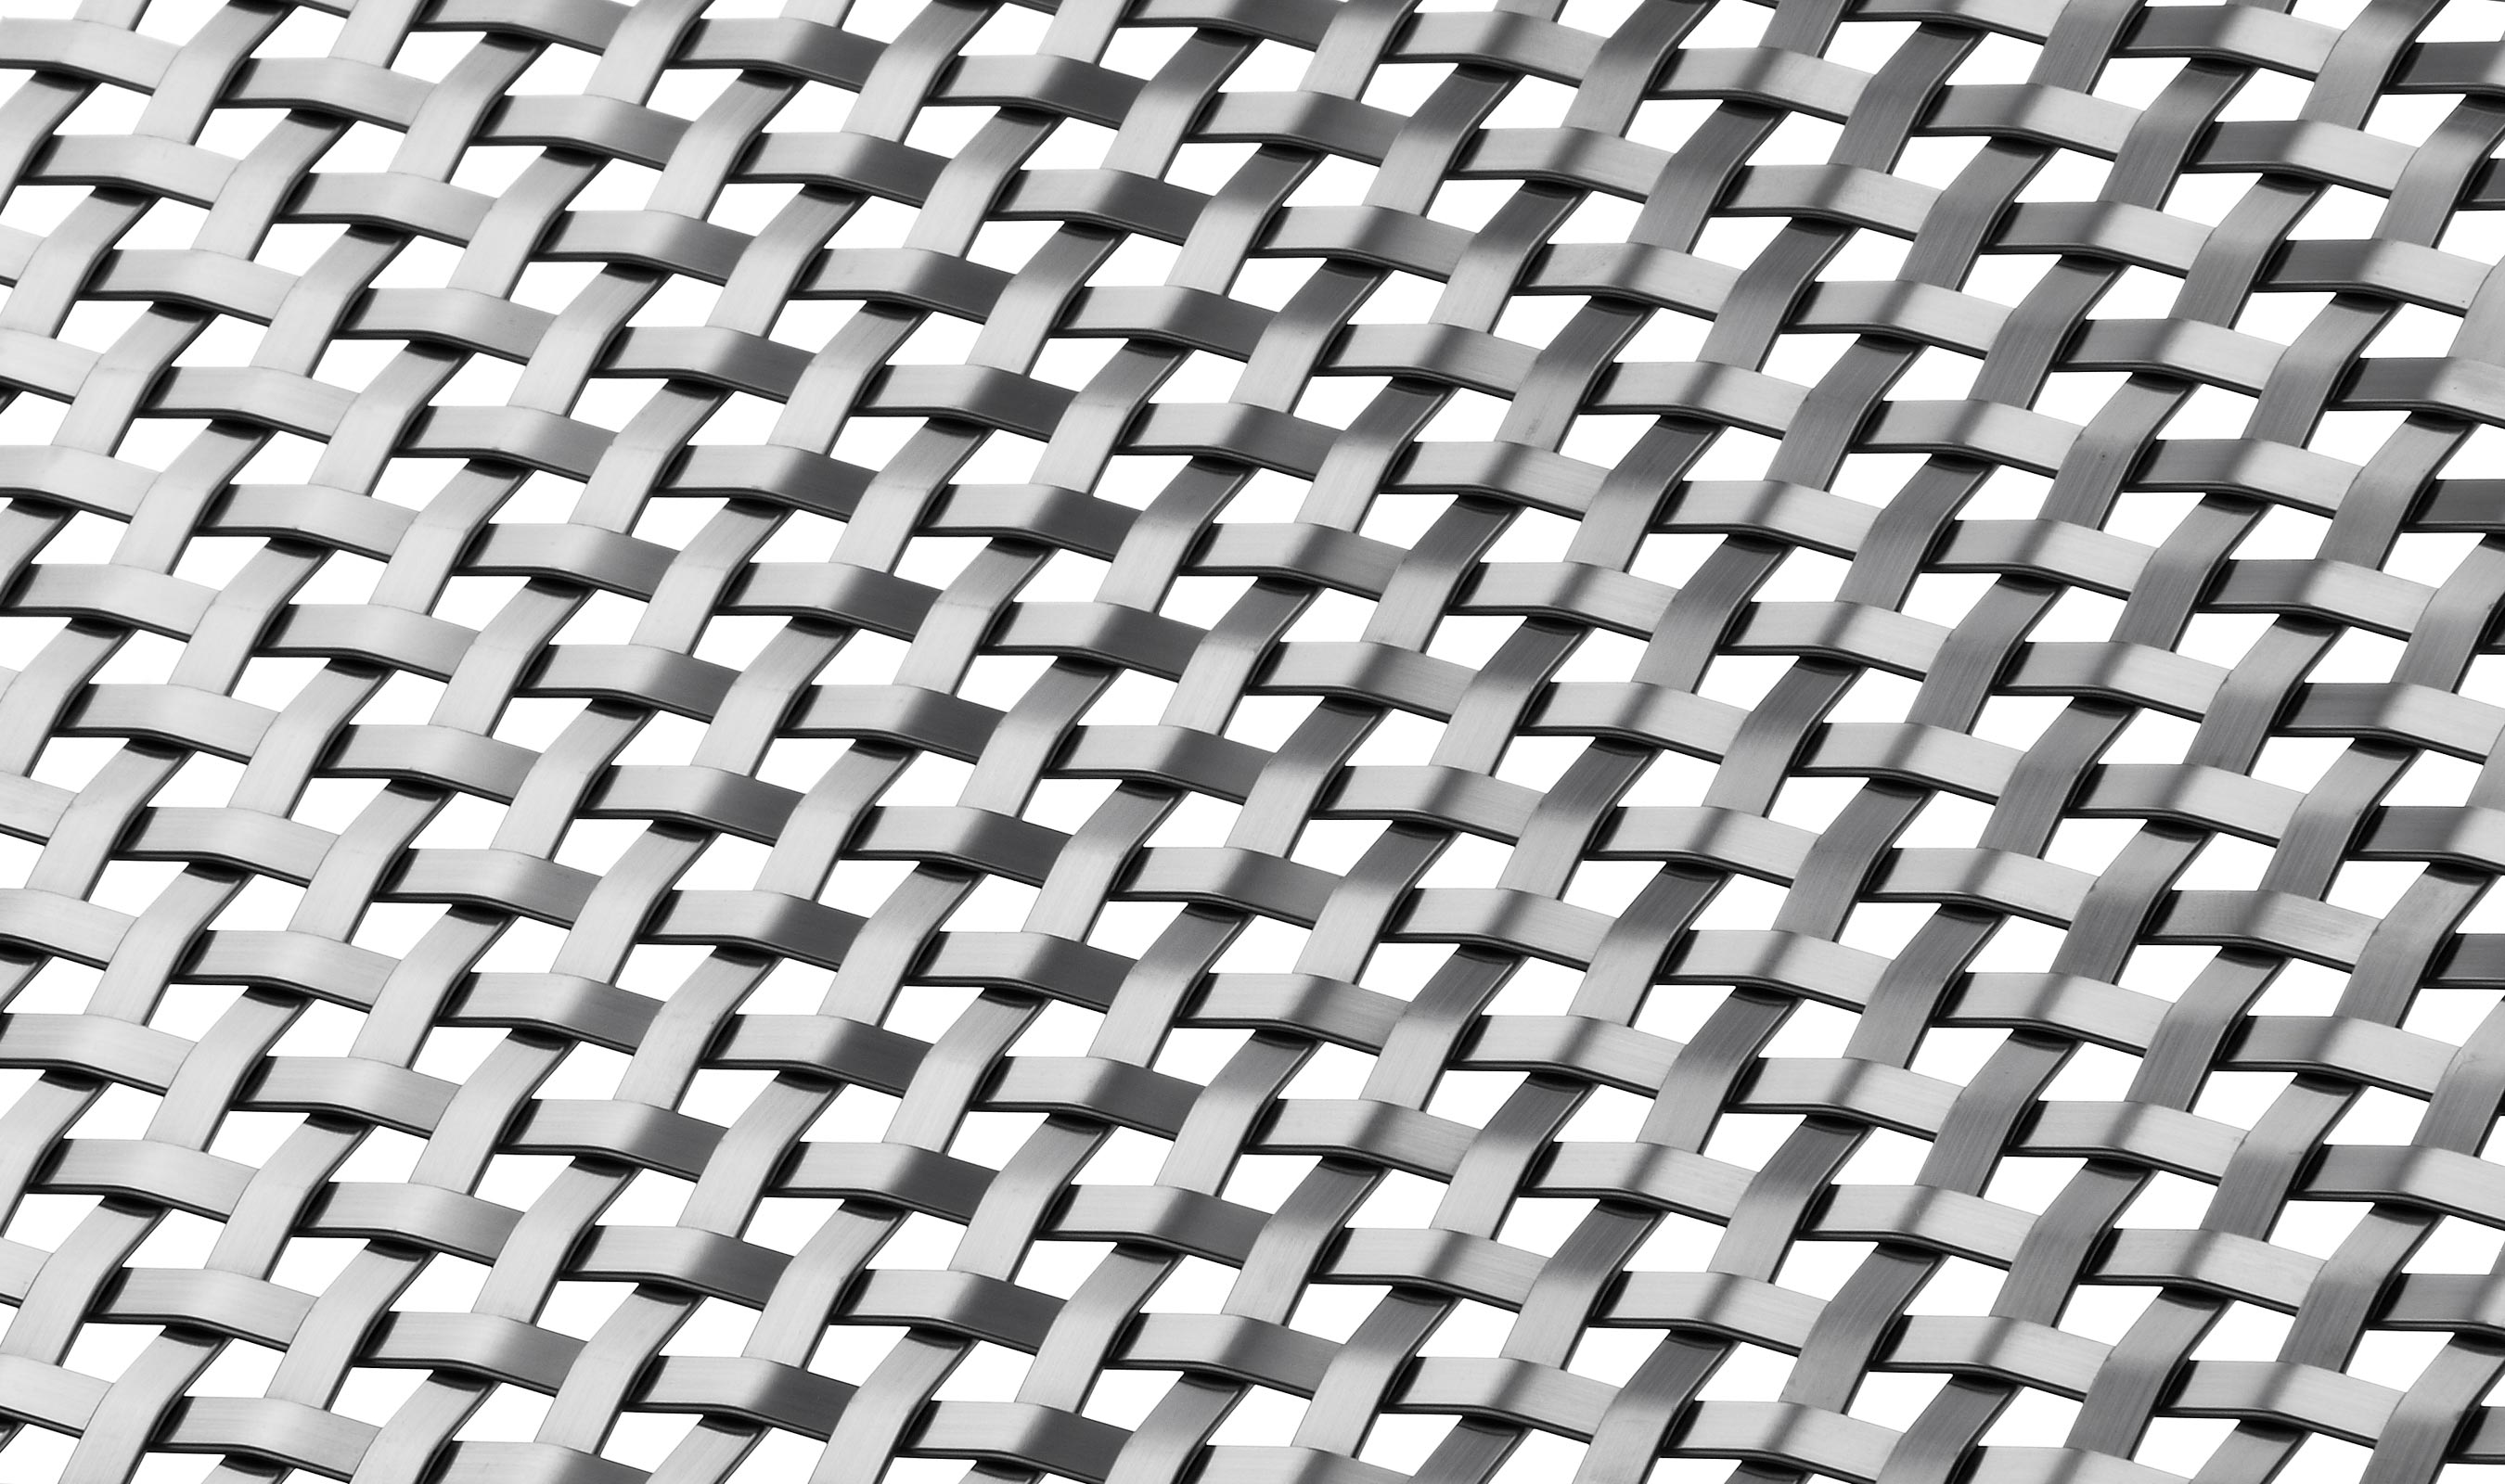 S-30 woven wire mesh in Stainless